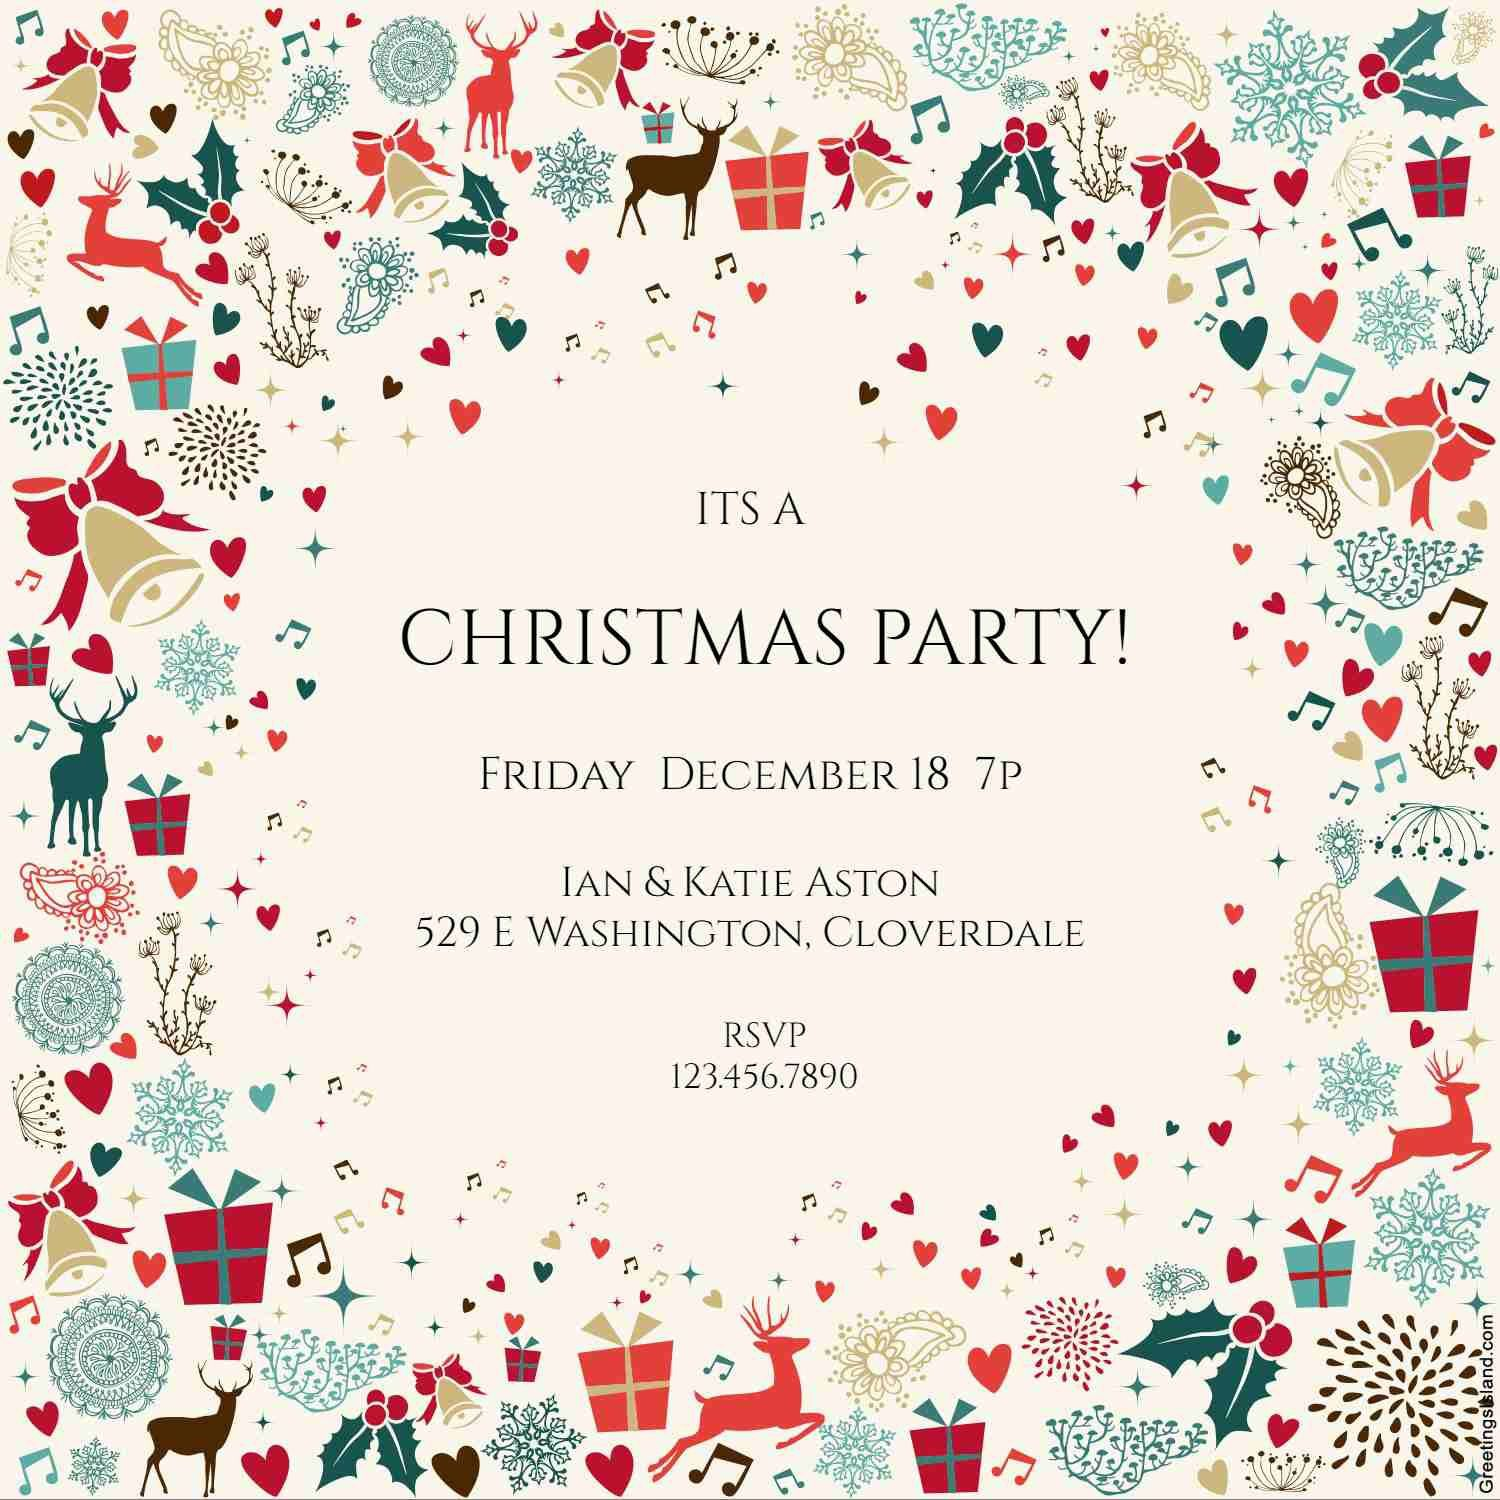 004 Stunning Free Online Holiday Invitation Template Highest Quality  TemplatesFull